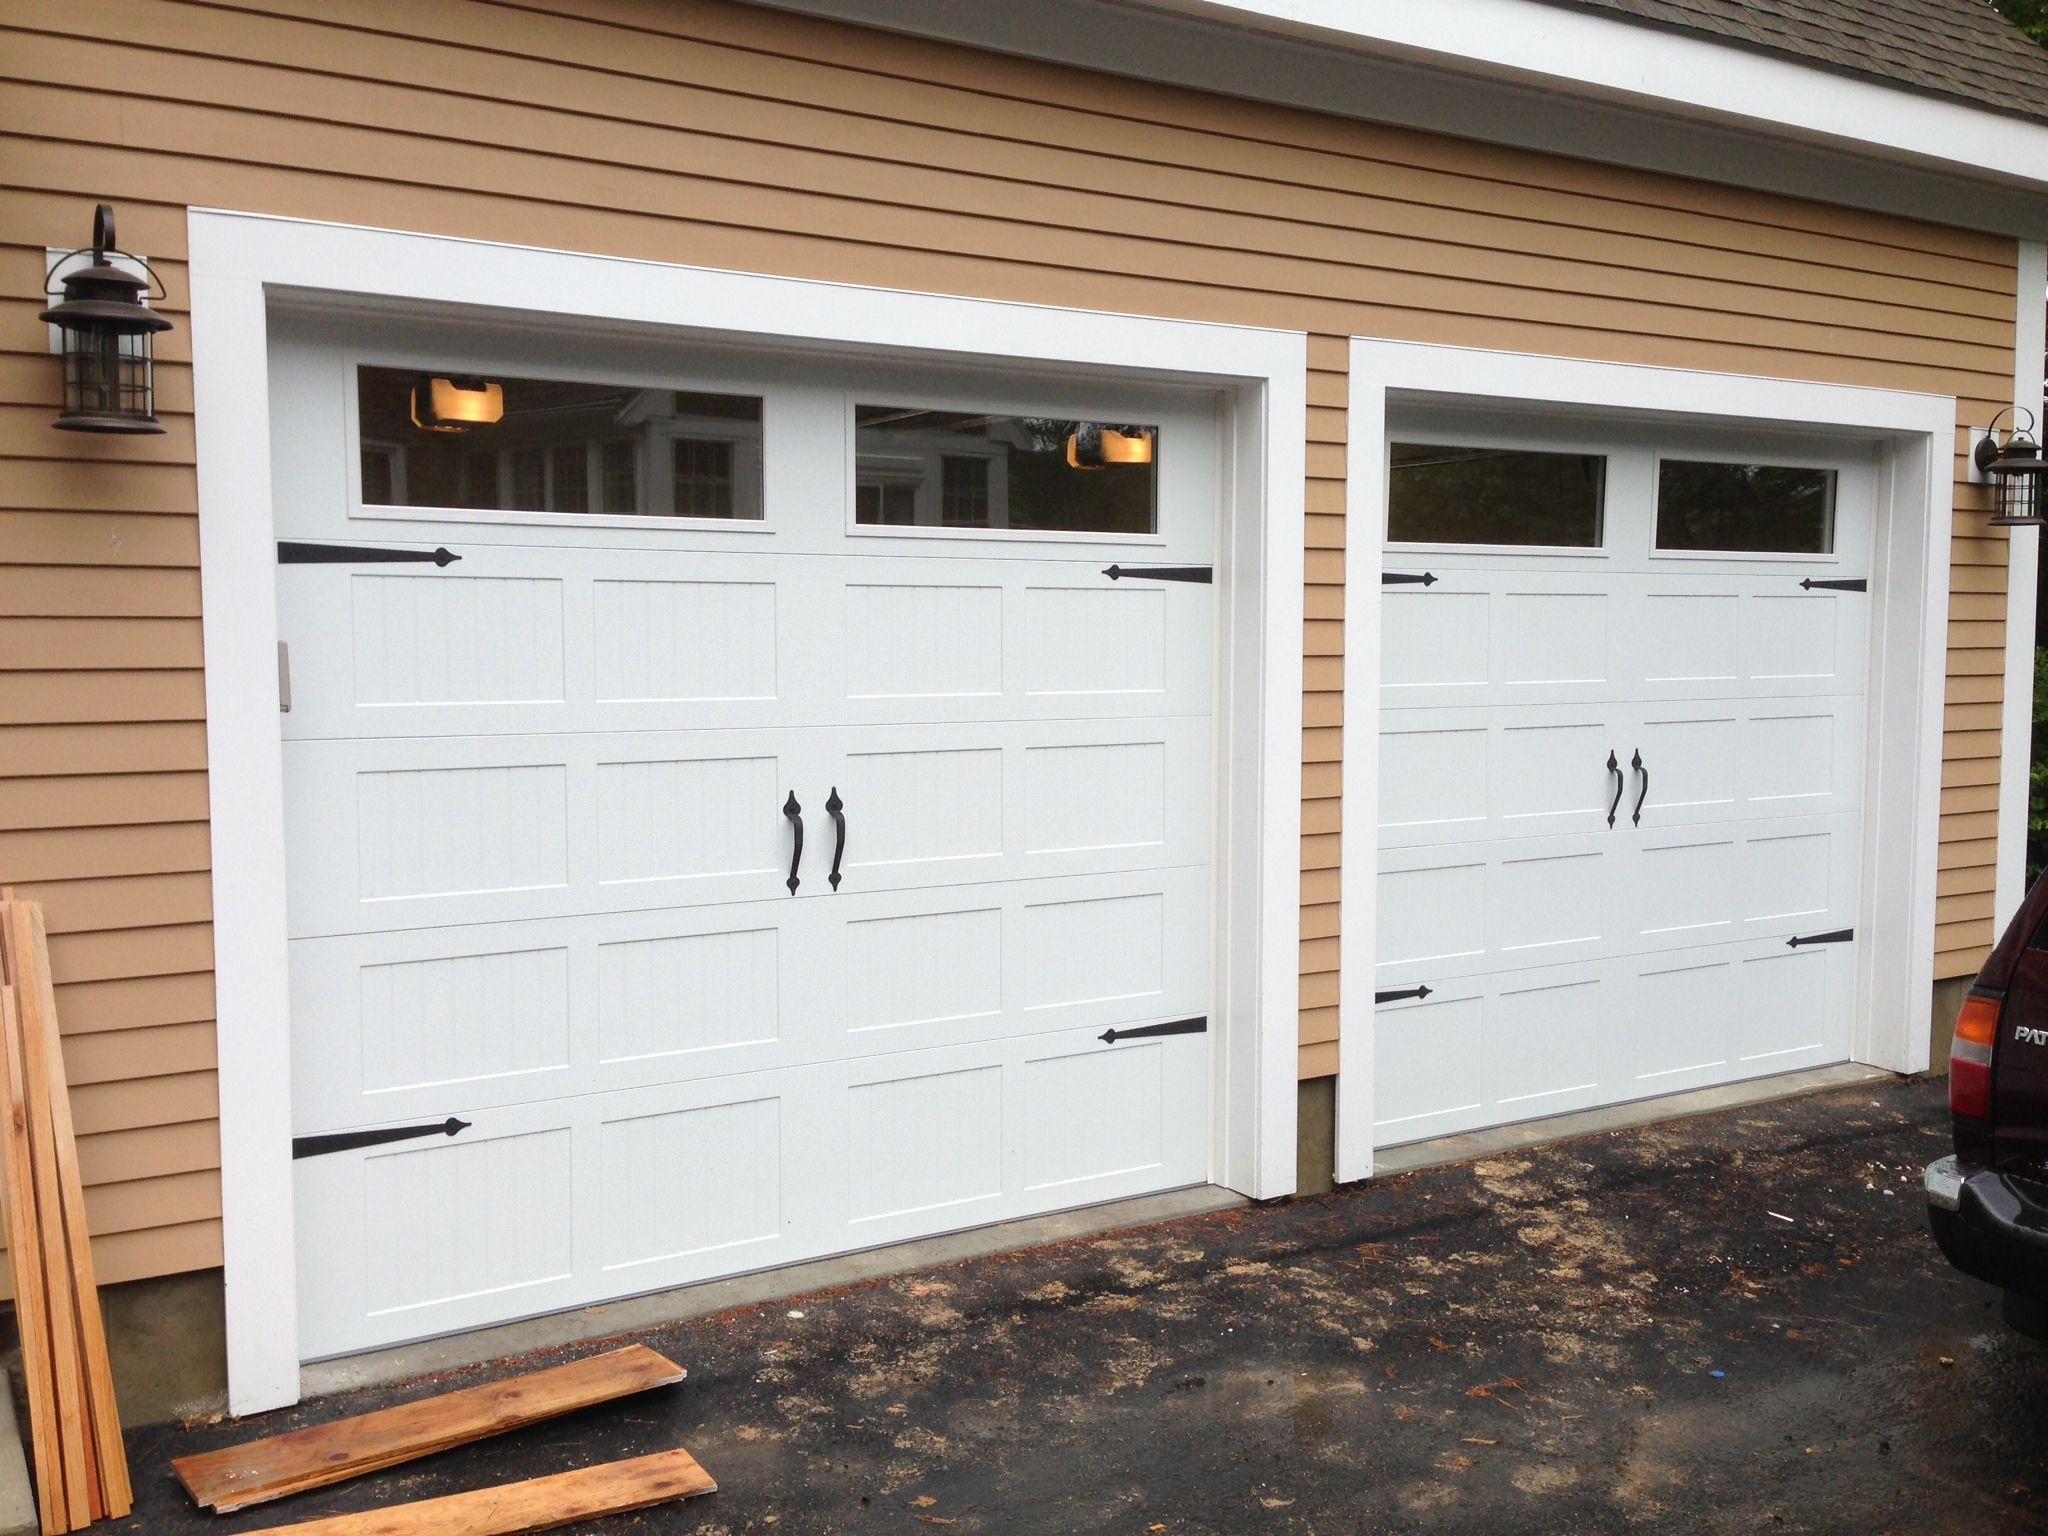 Carriage House Garage Doors Garage Doors Carriage House Garage Doors Overhead Garage Door